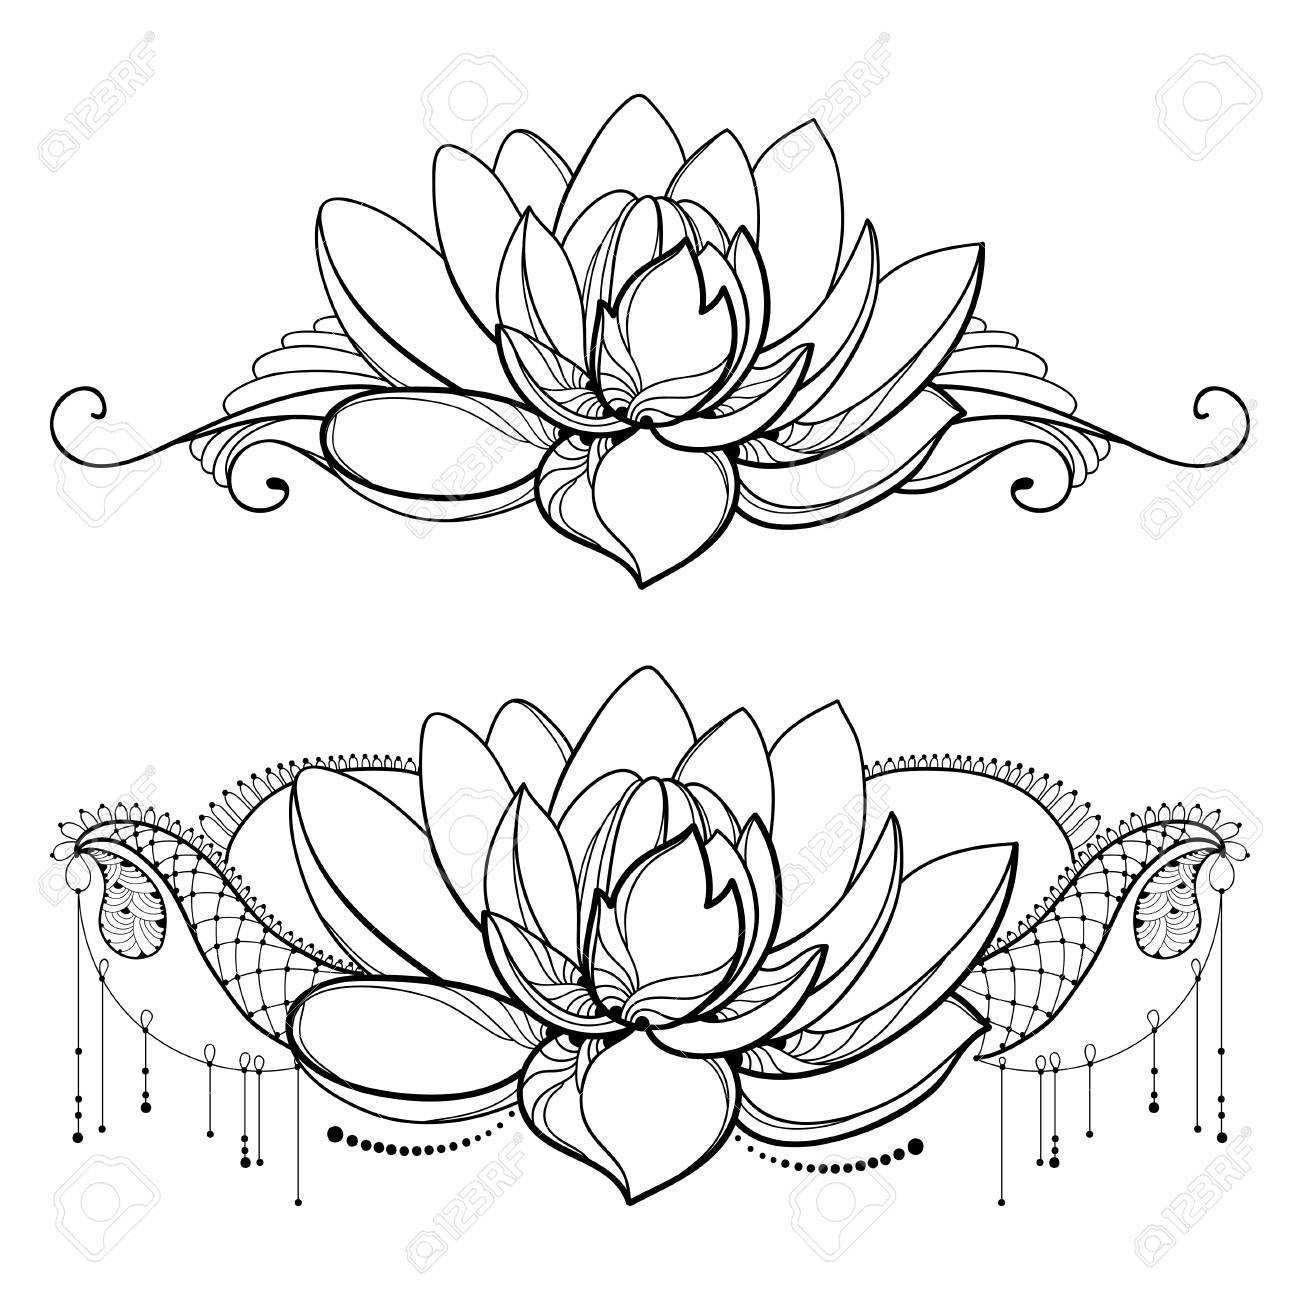 Drawing with outline lotus flower decorative lace and swirls drawing with outline lotus flower decorative lace and swirls in black isolated on white background mightylinksfo